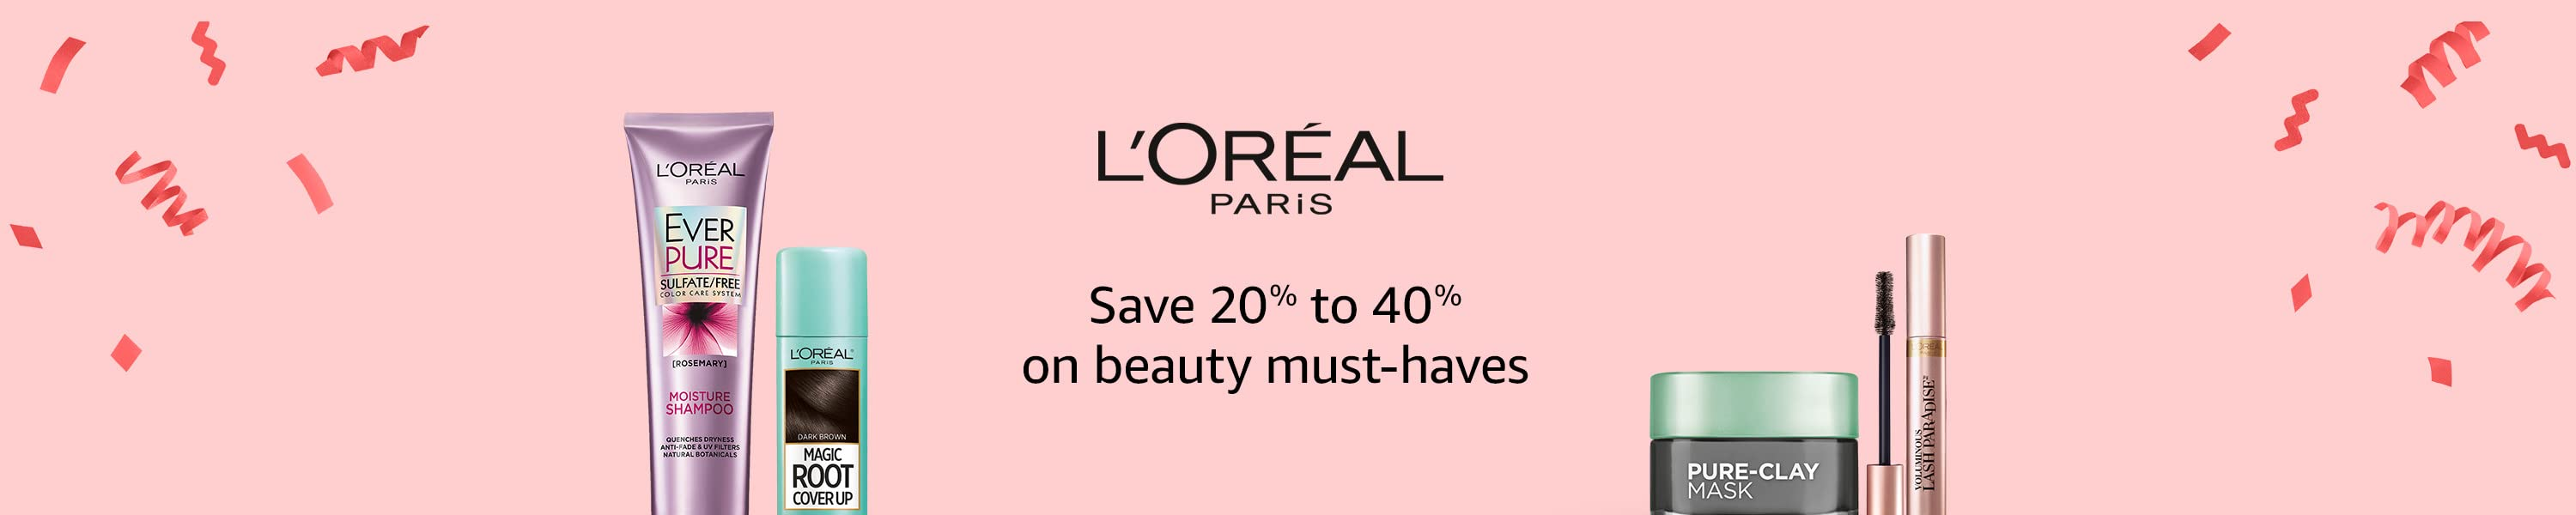 L'Oreal. Save 20% to 40% on beauty must-haves.